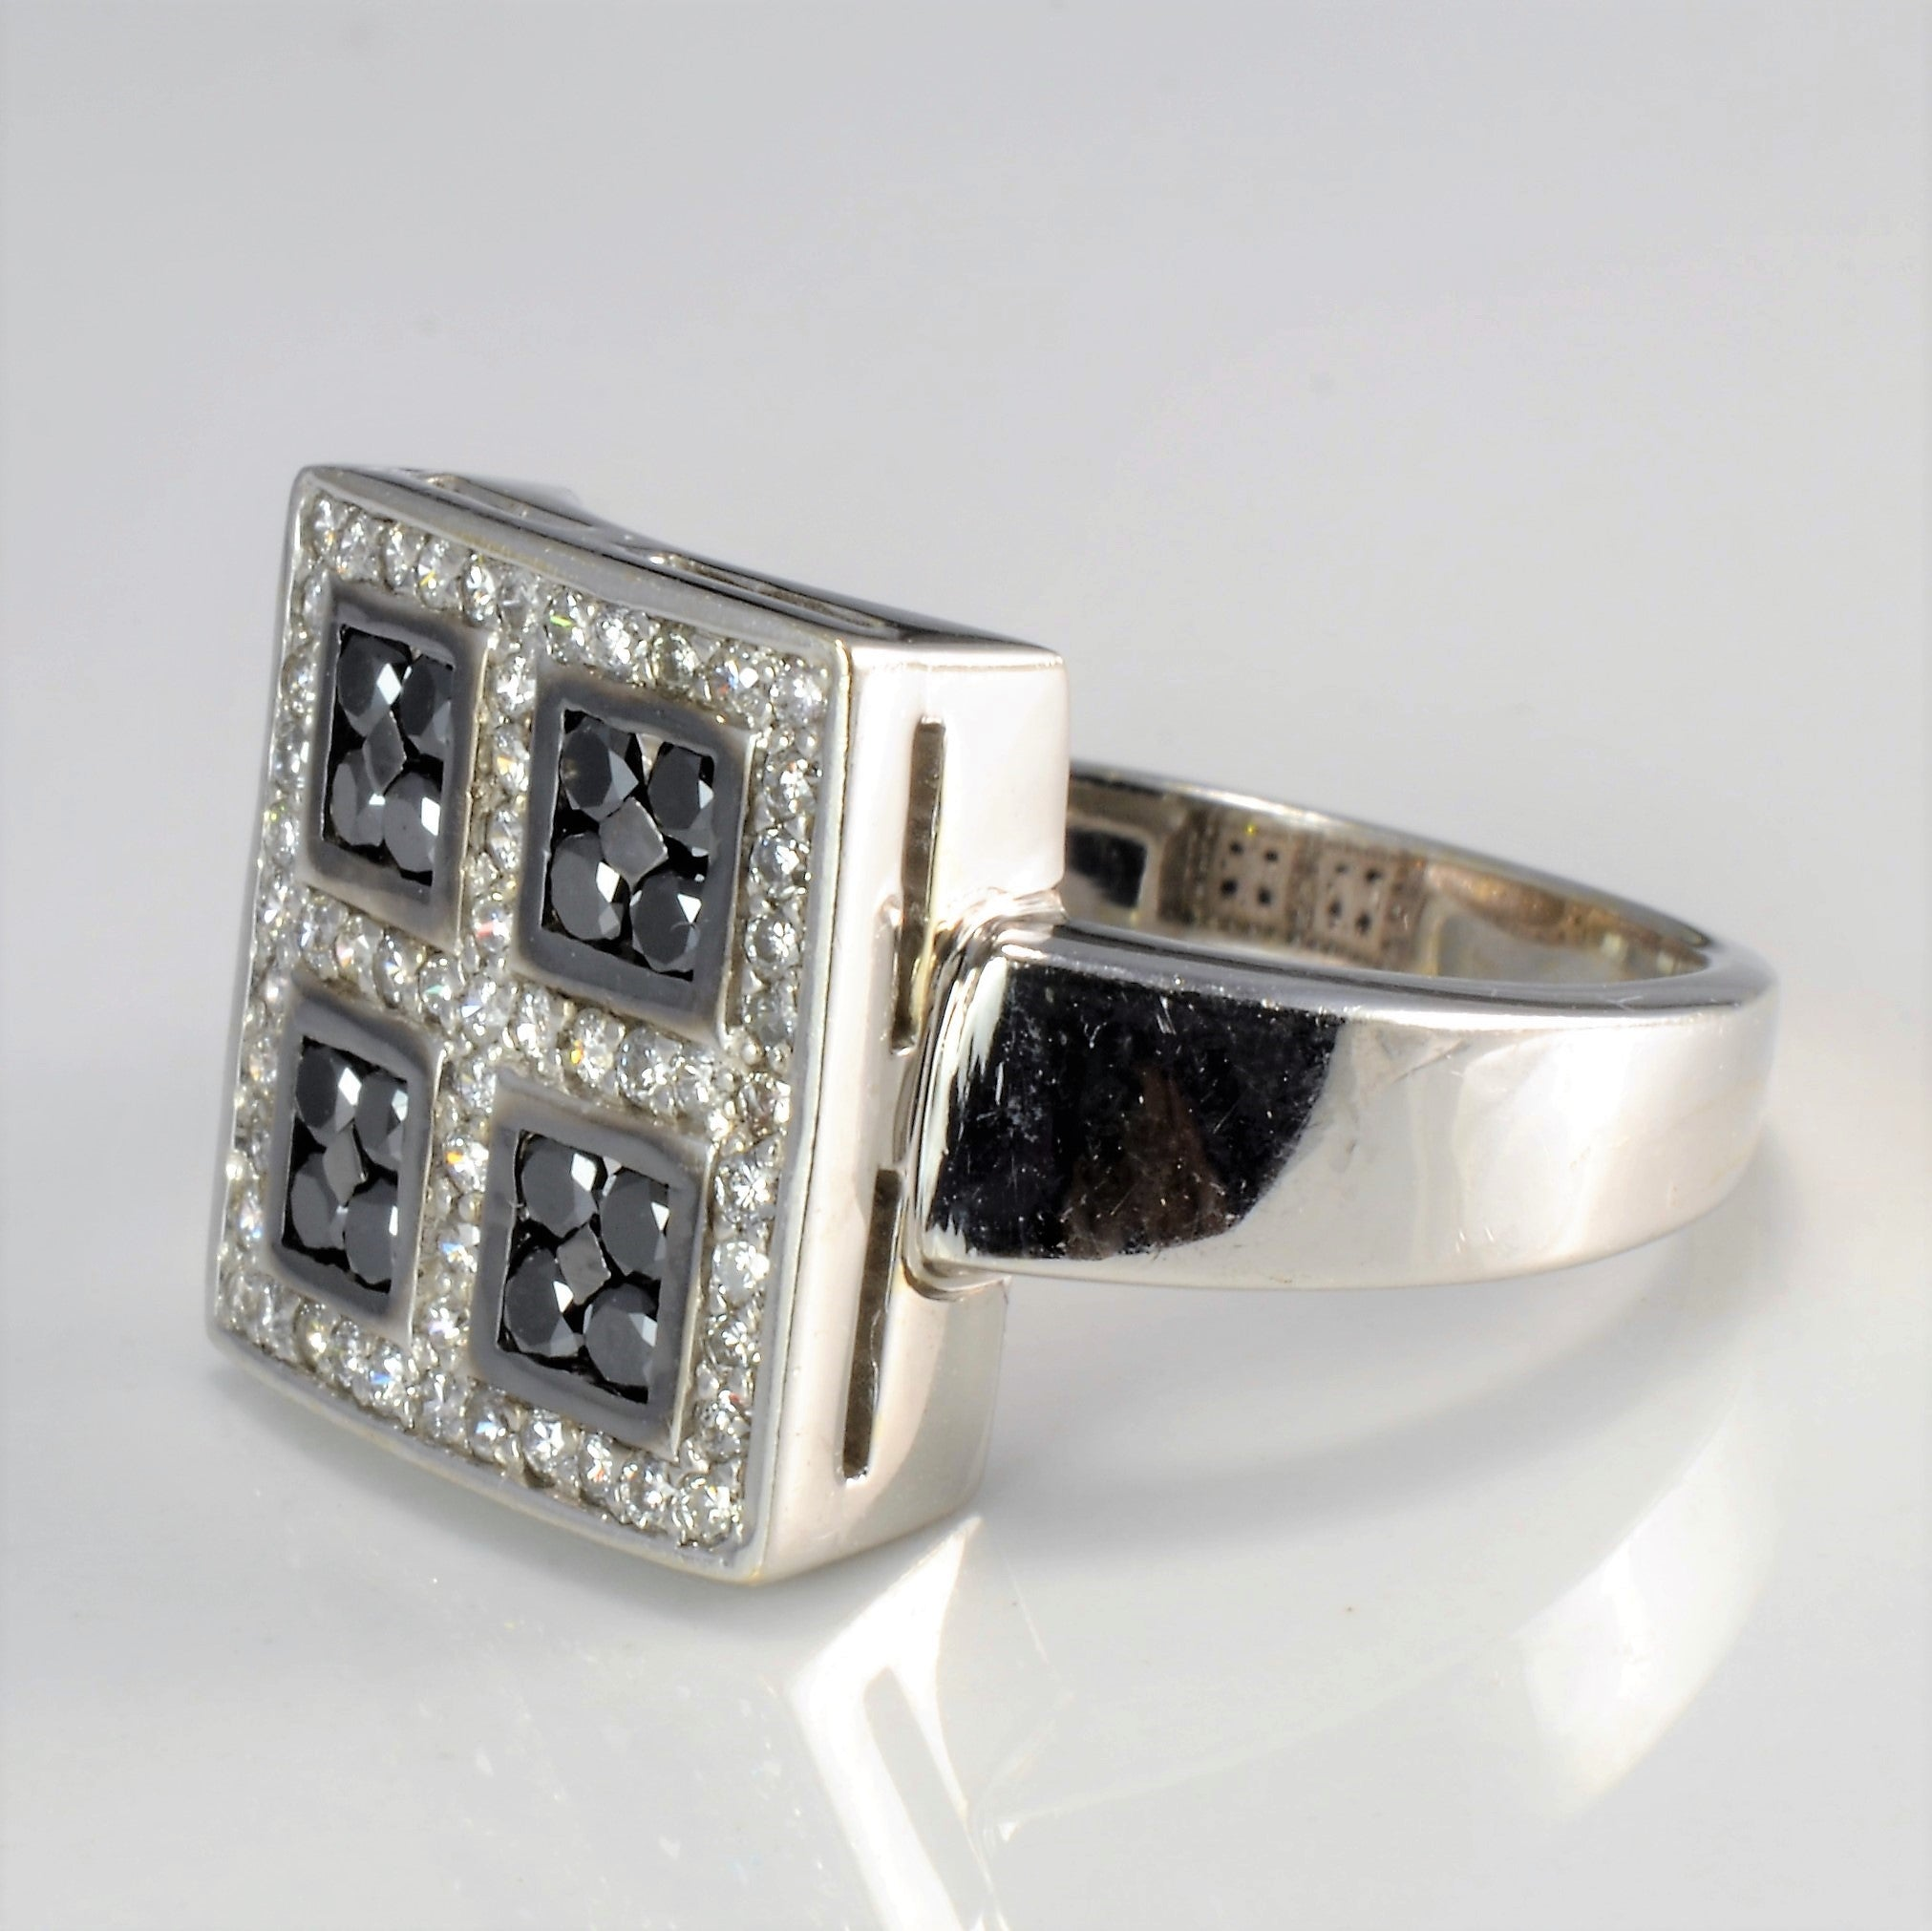 Grid Set Cluster Diamond Ring | 0.73 ctw, SZ 7.75 |